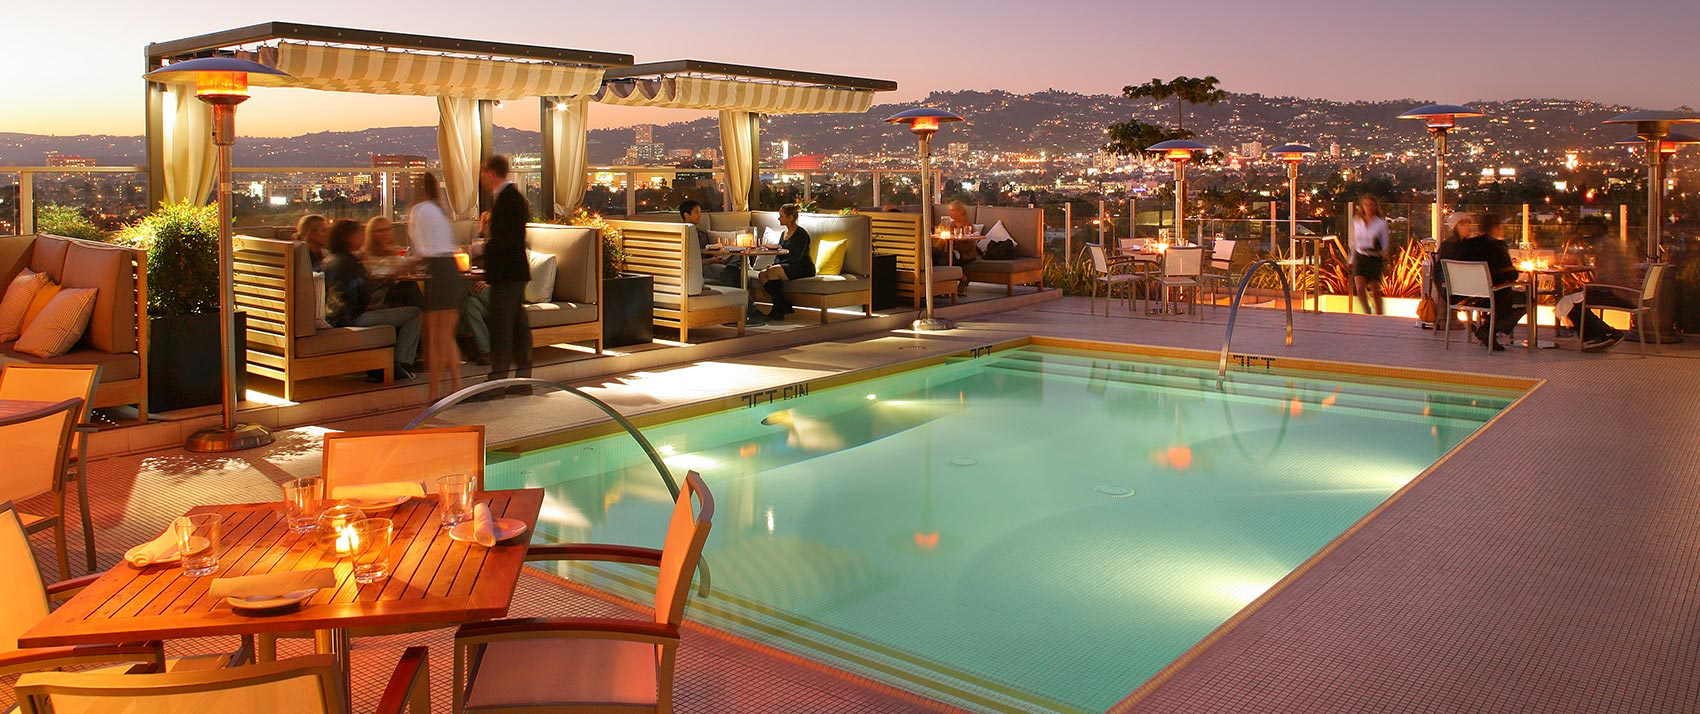 Kimpton Hotel Wilshire roof top fire pit